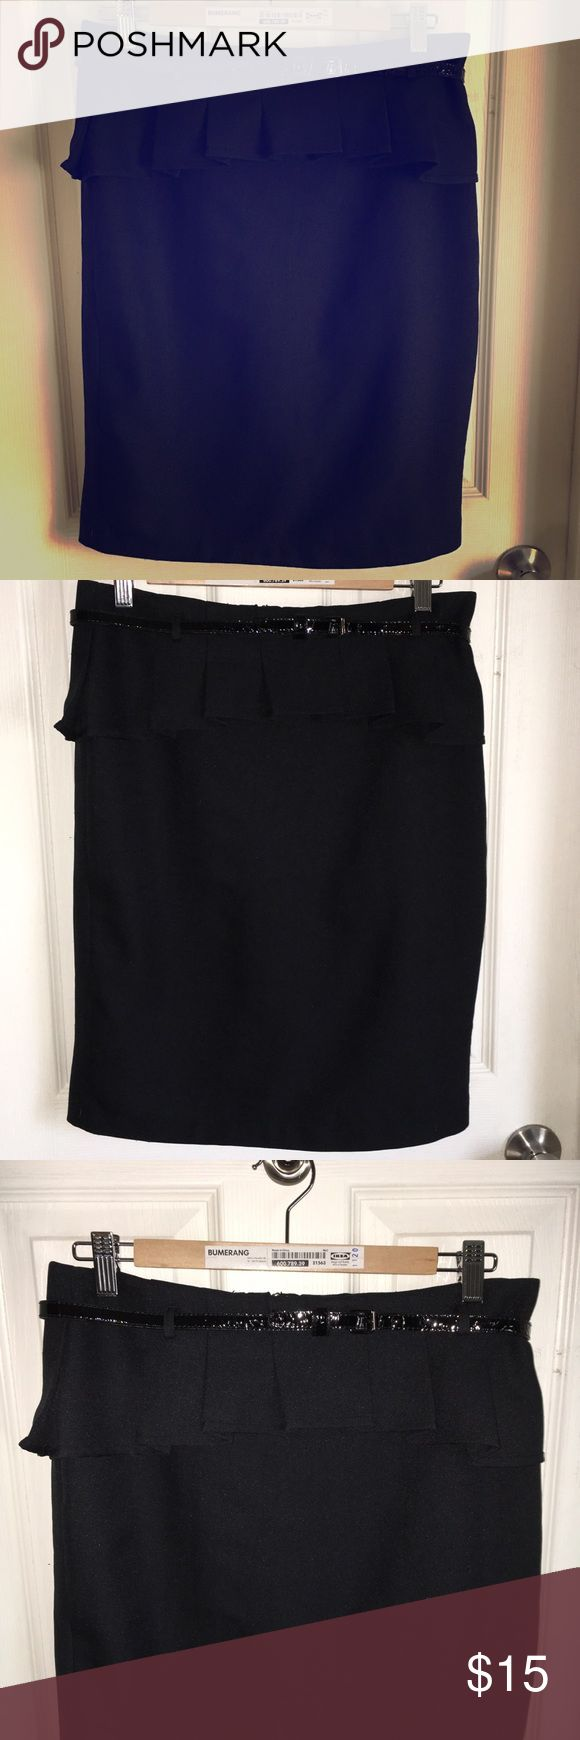 Black peplum skirt - The Limited This is a black peplum skirt from The Limited. Size 6. Belt included. Excellent condition. The Limited Skirts Midi